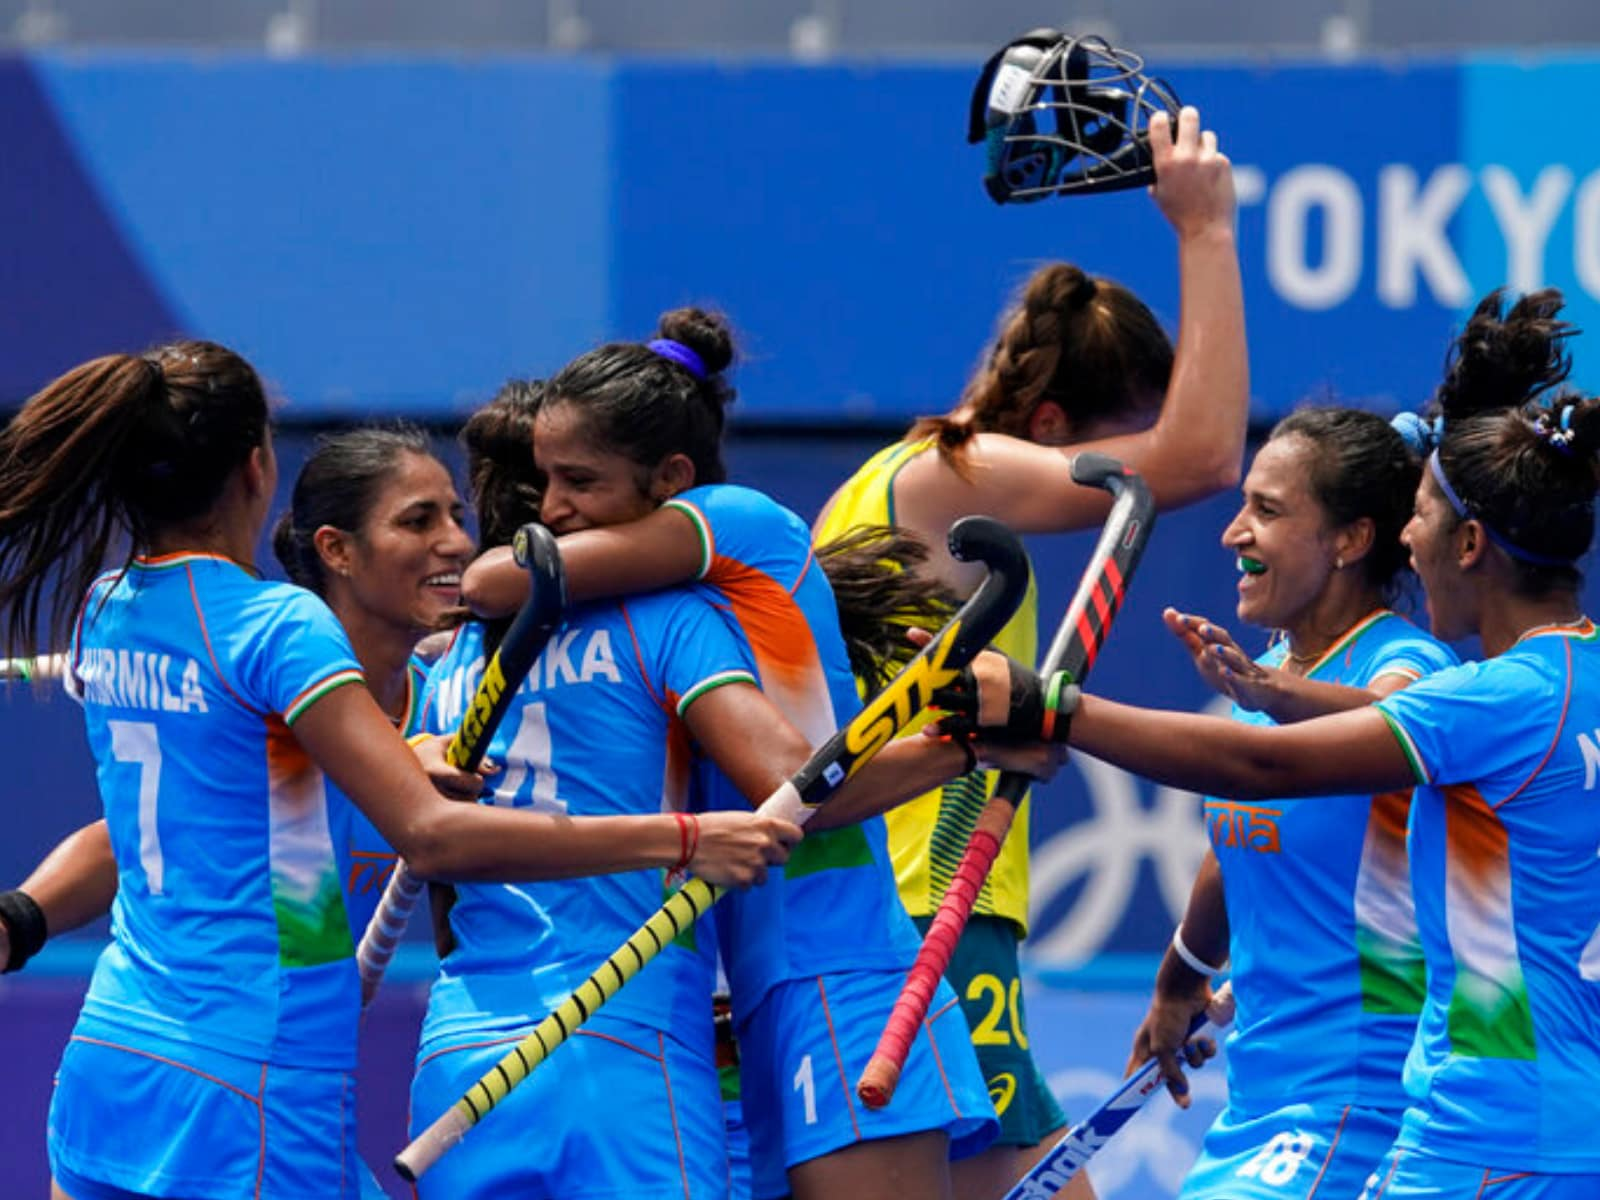 Tokyo 2020: Indian Women's Hockey Team Make History, Reach 1st Olympic  Semi-final with 1-0 Win over Australia